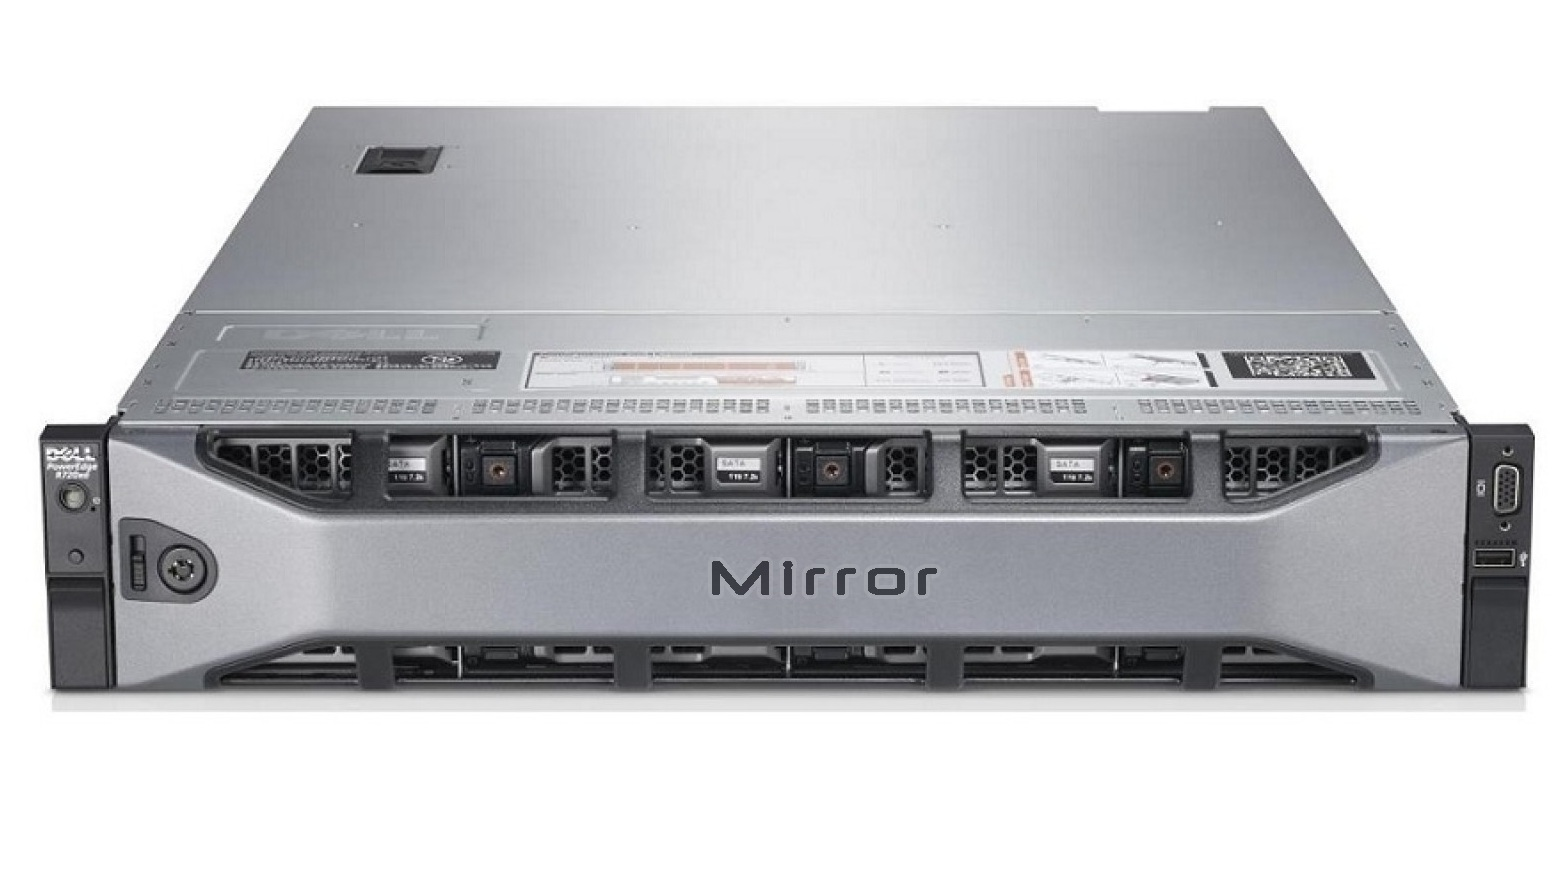 Mirror Backup System - The only Disaster Readiness system focused on AEC.